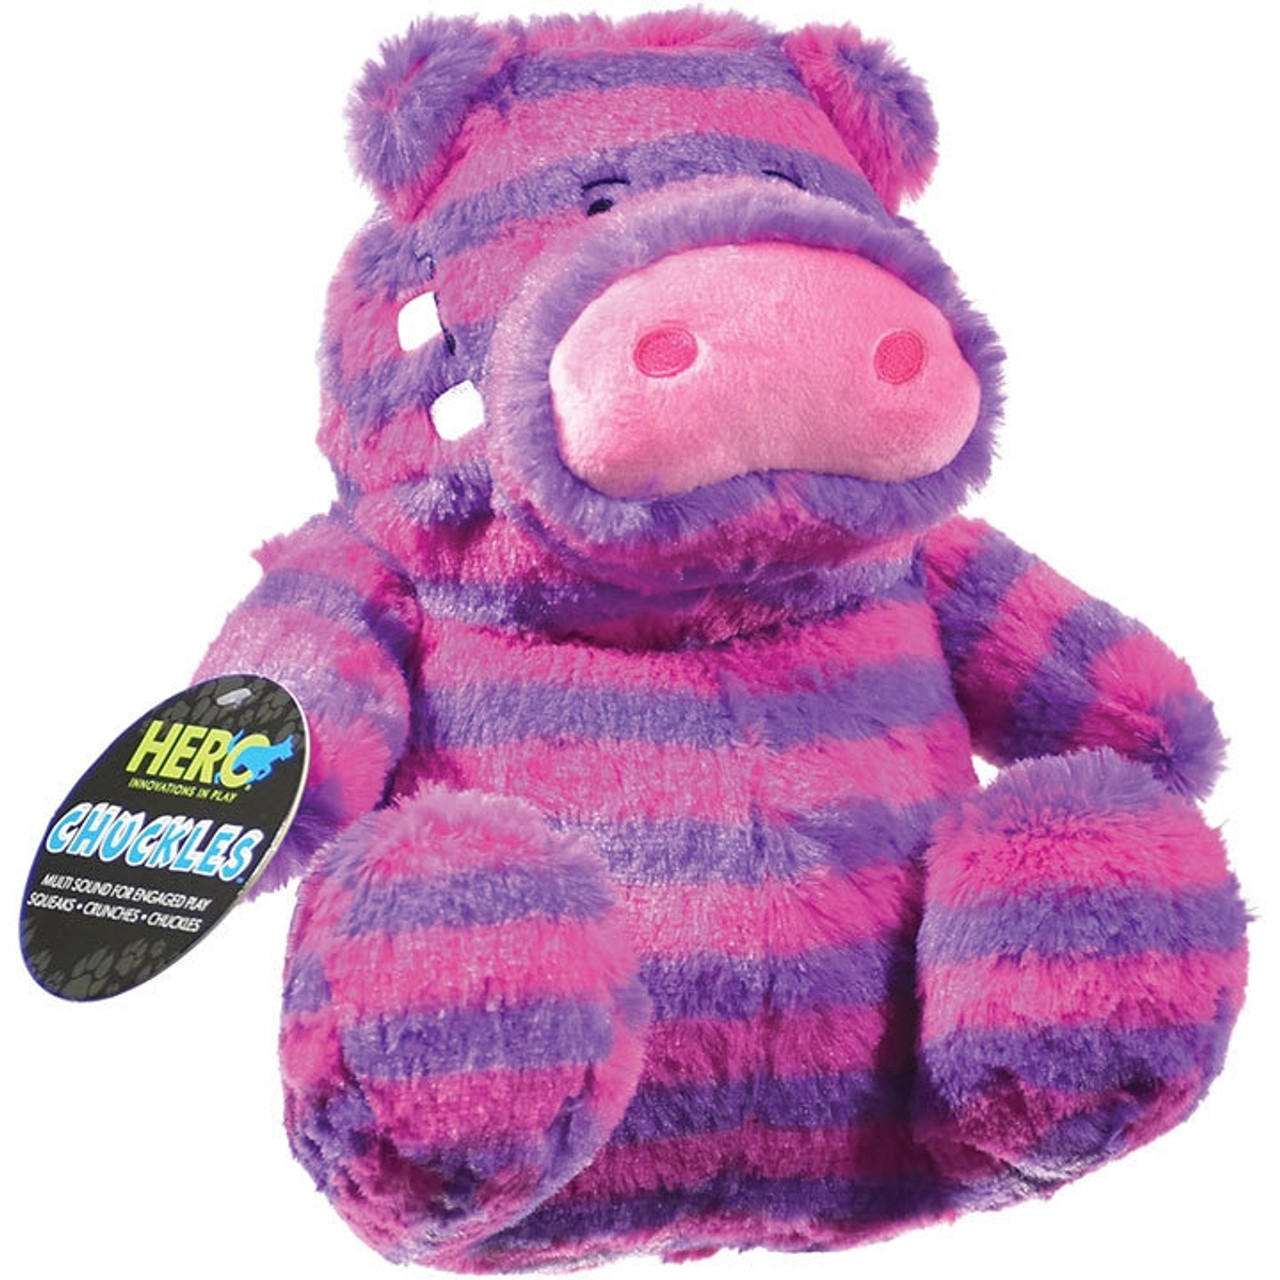 Hero Chuckles Hippo Plush Dog Toy Large Countrymax